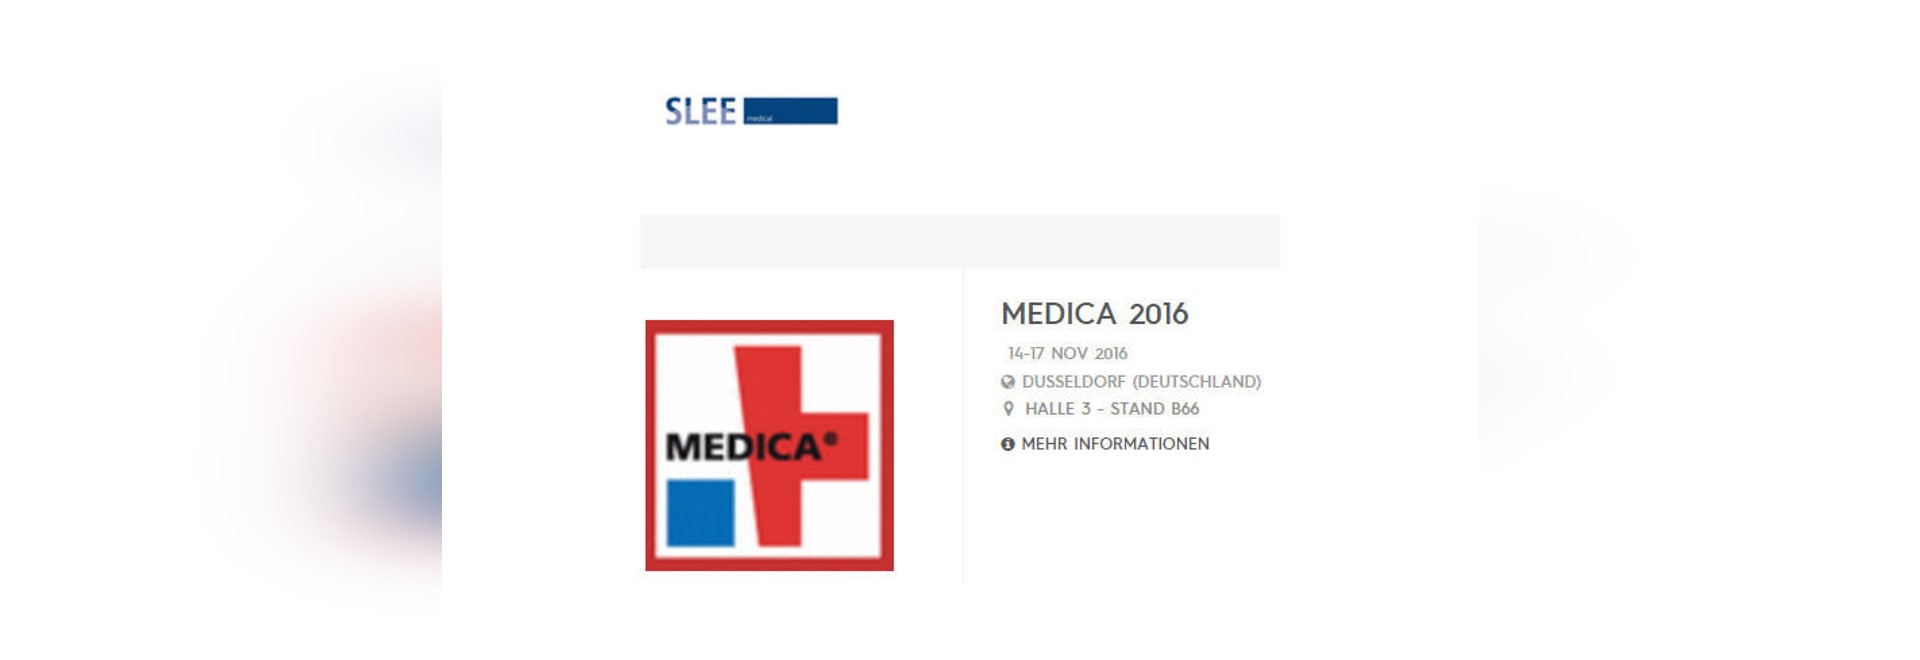 SLEE  Medical exhibits on Medica 2016 in Hall 3 / B66